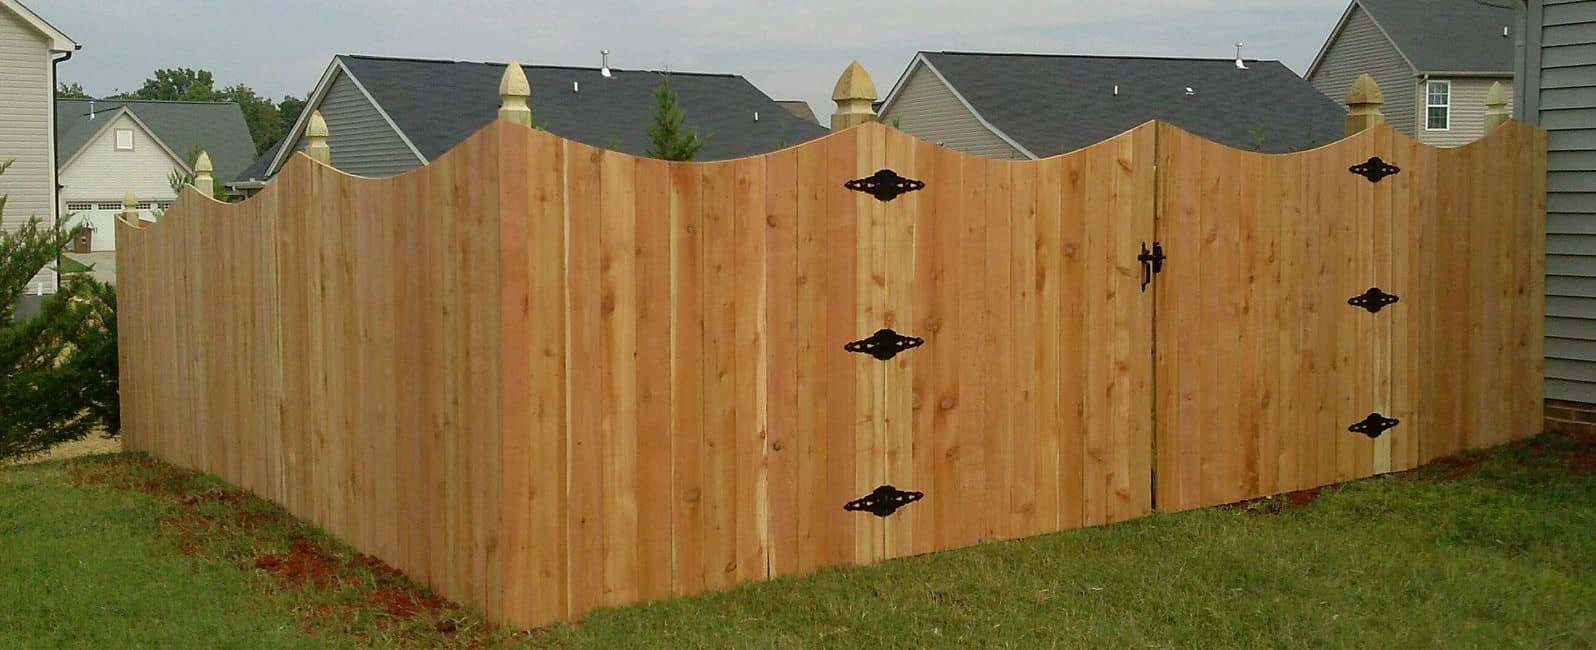 Wood Scalloped Privacy Fence